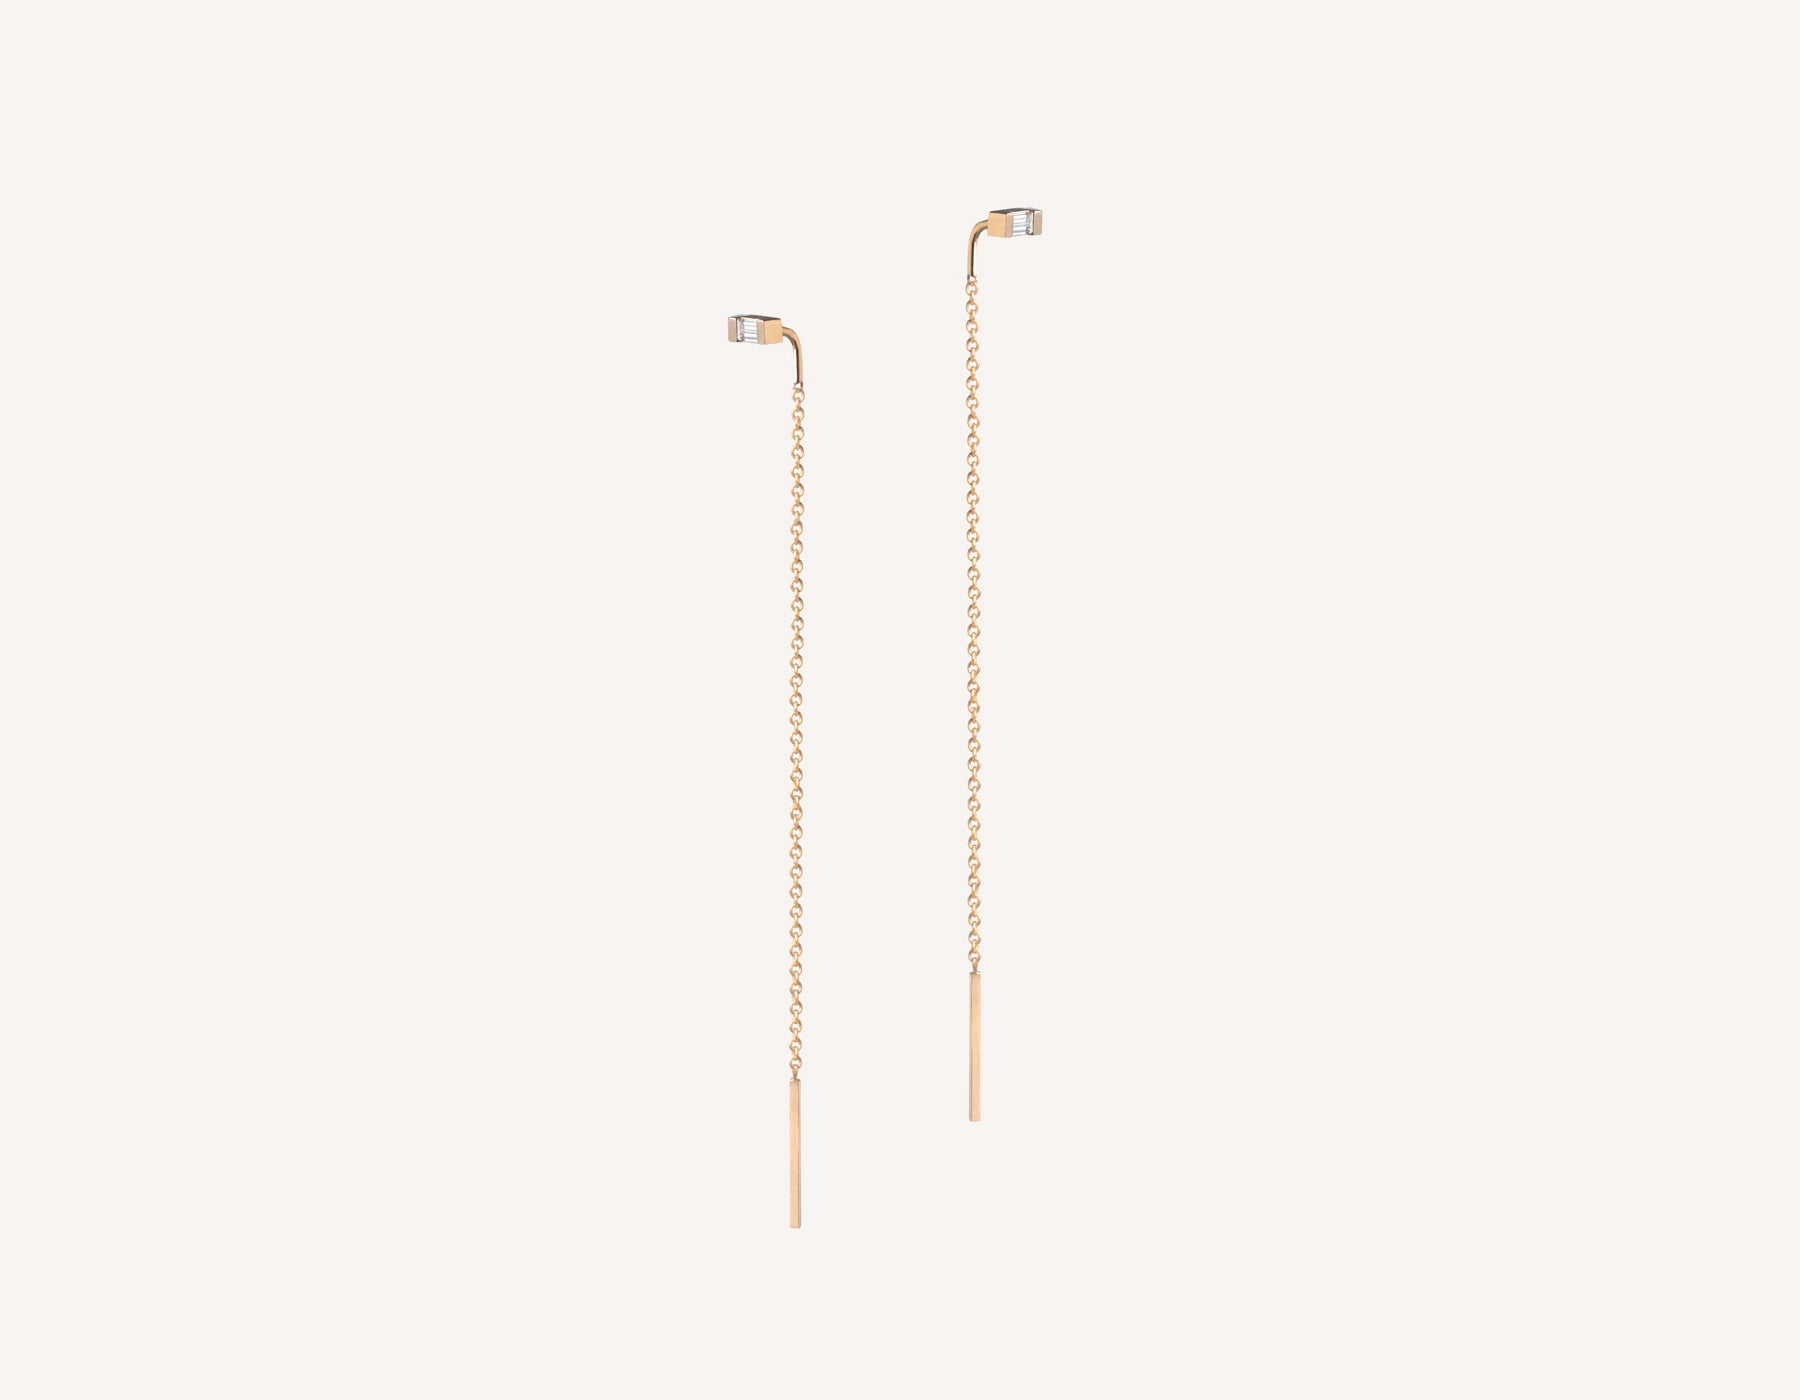 Vrai & oro simple petite 14k solid gold Baguette Diamond Line threader delicate chain earrings, 14K Rose Gold